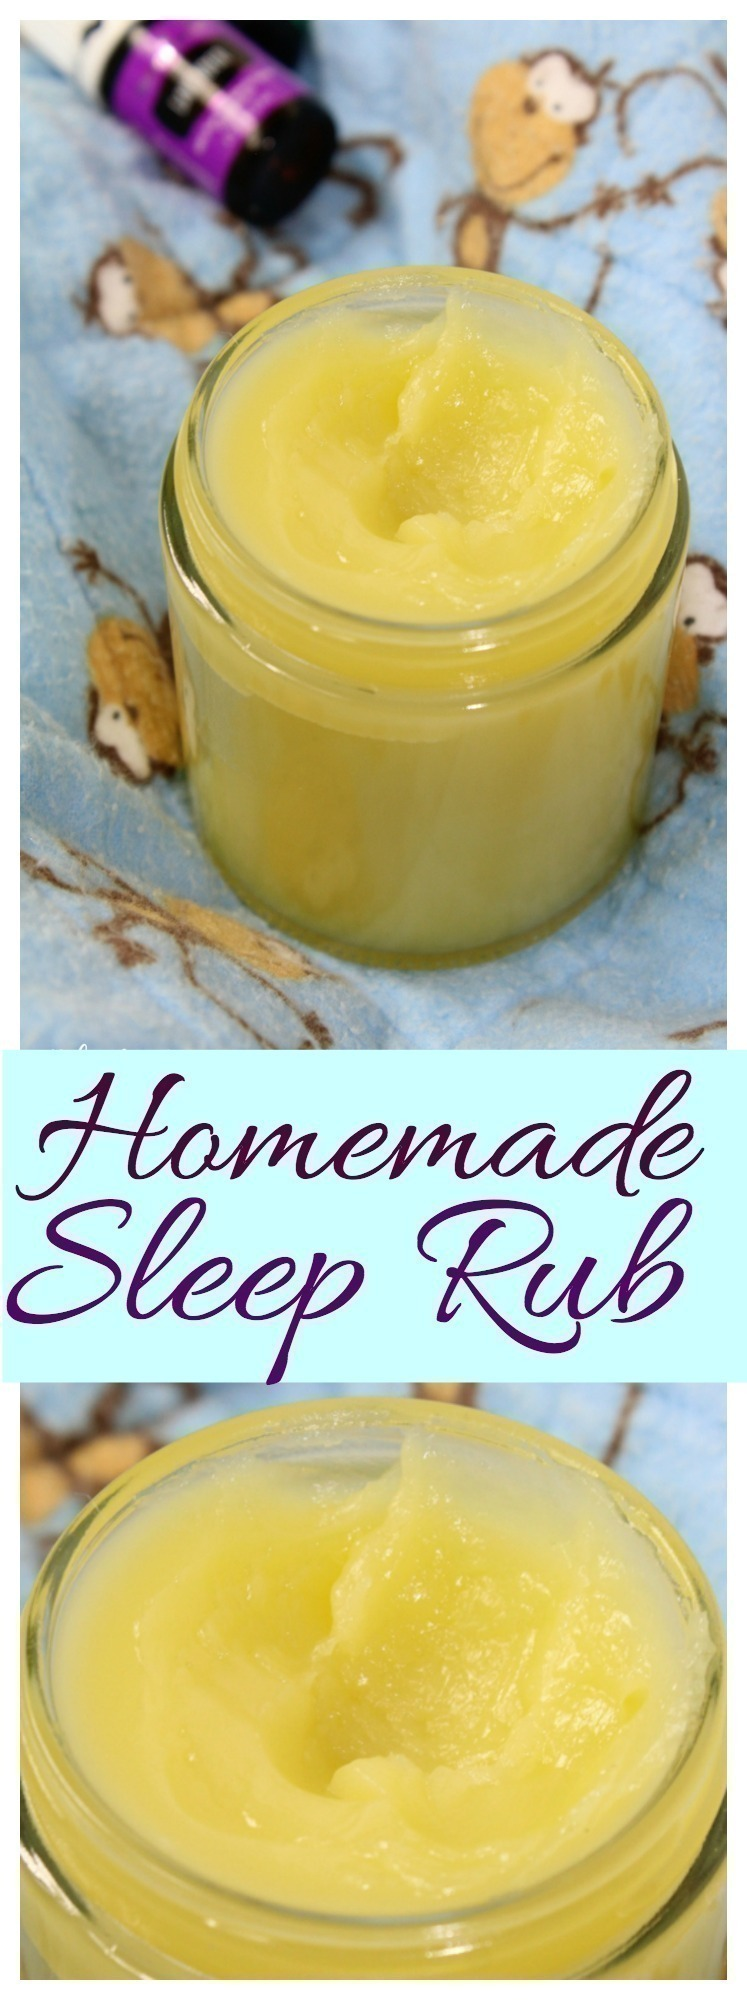 Rest easy with this simple homemade sleep rub, made with simple ingredients and essential oils that will help support a healthy rest!